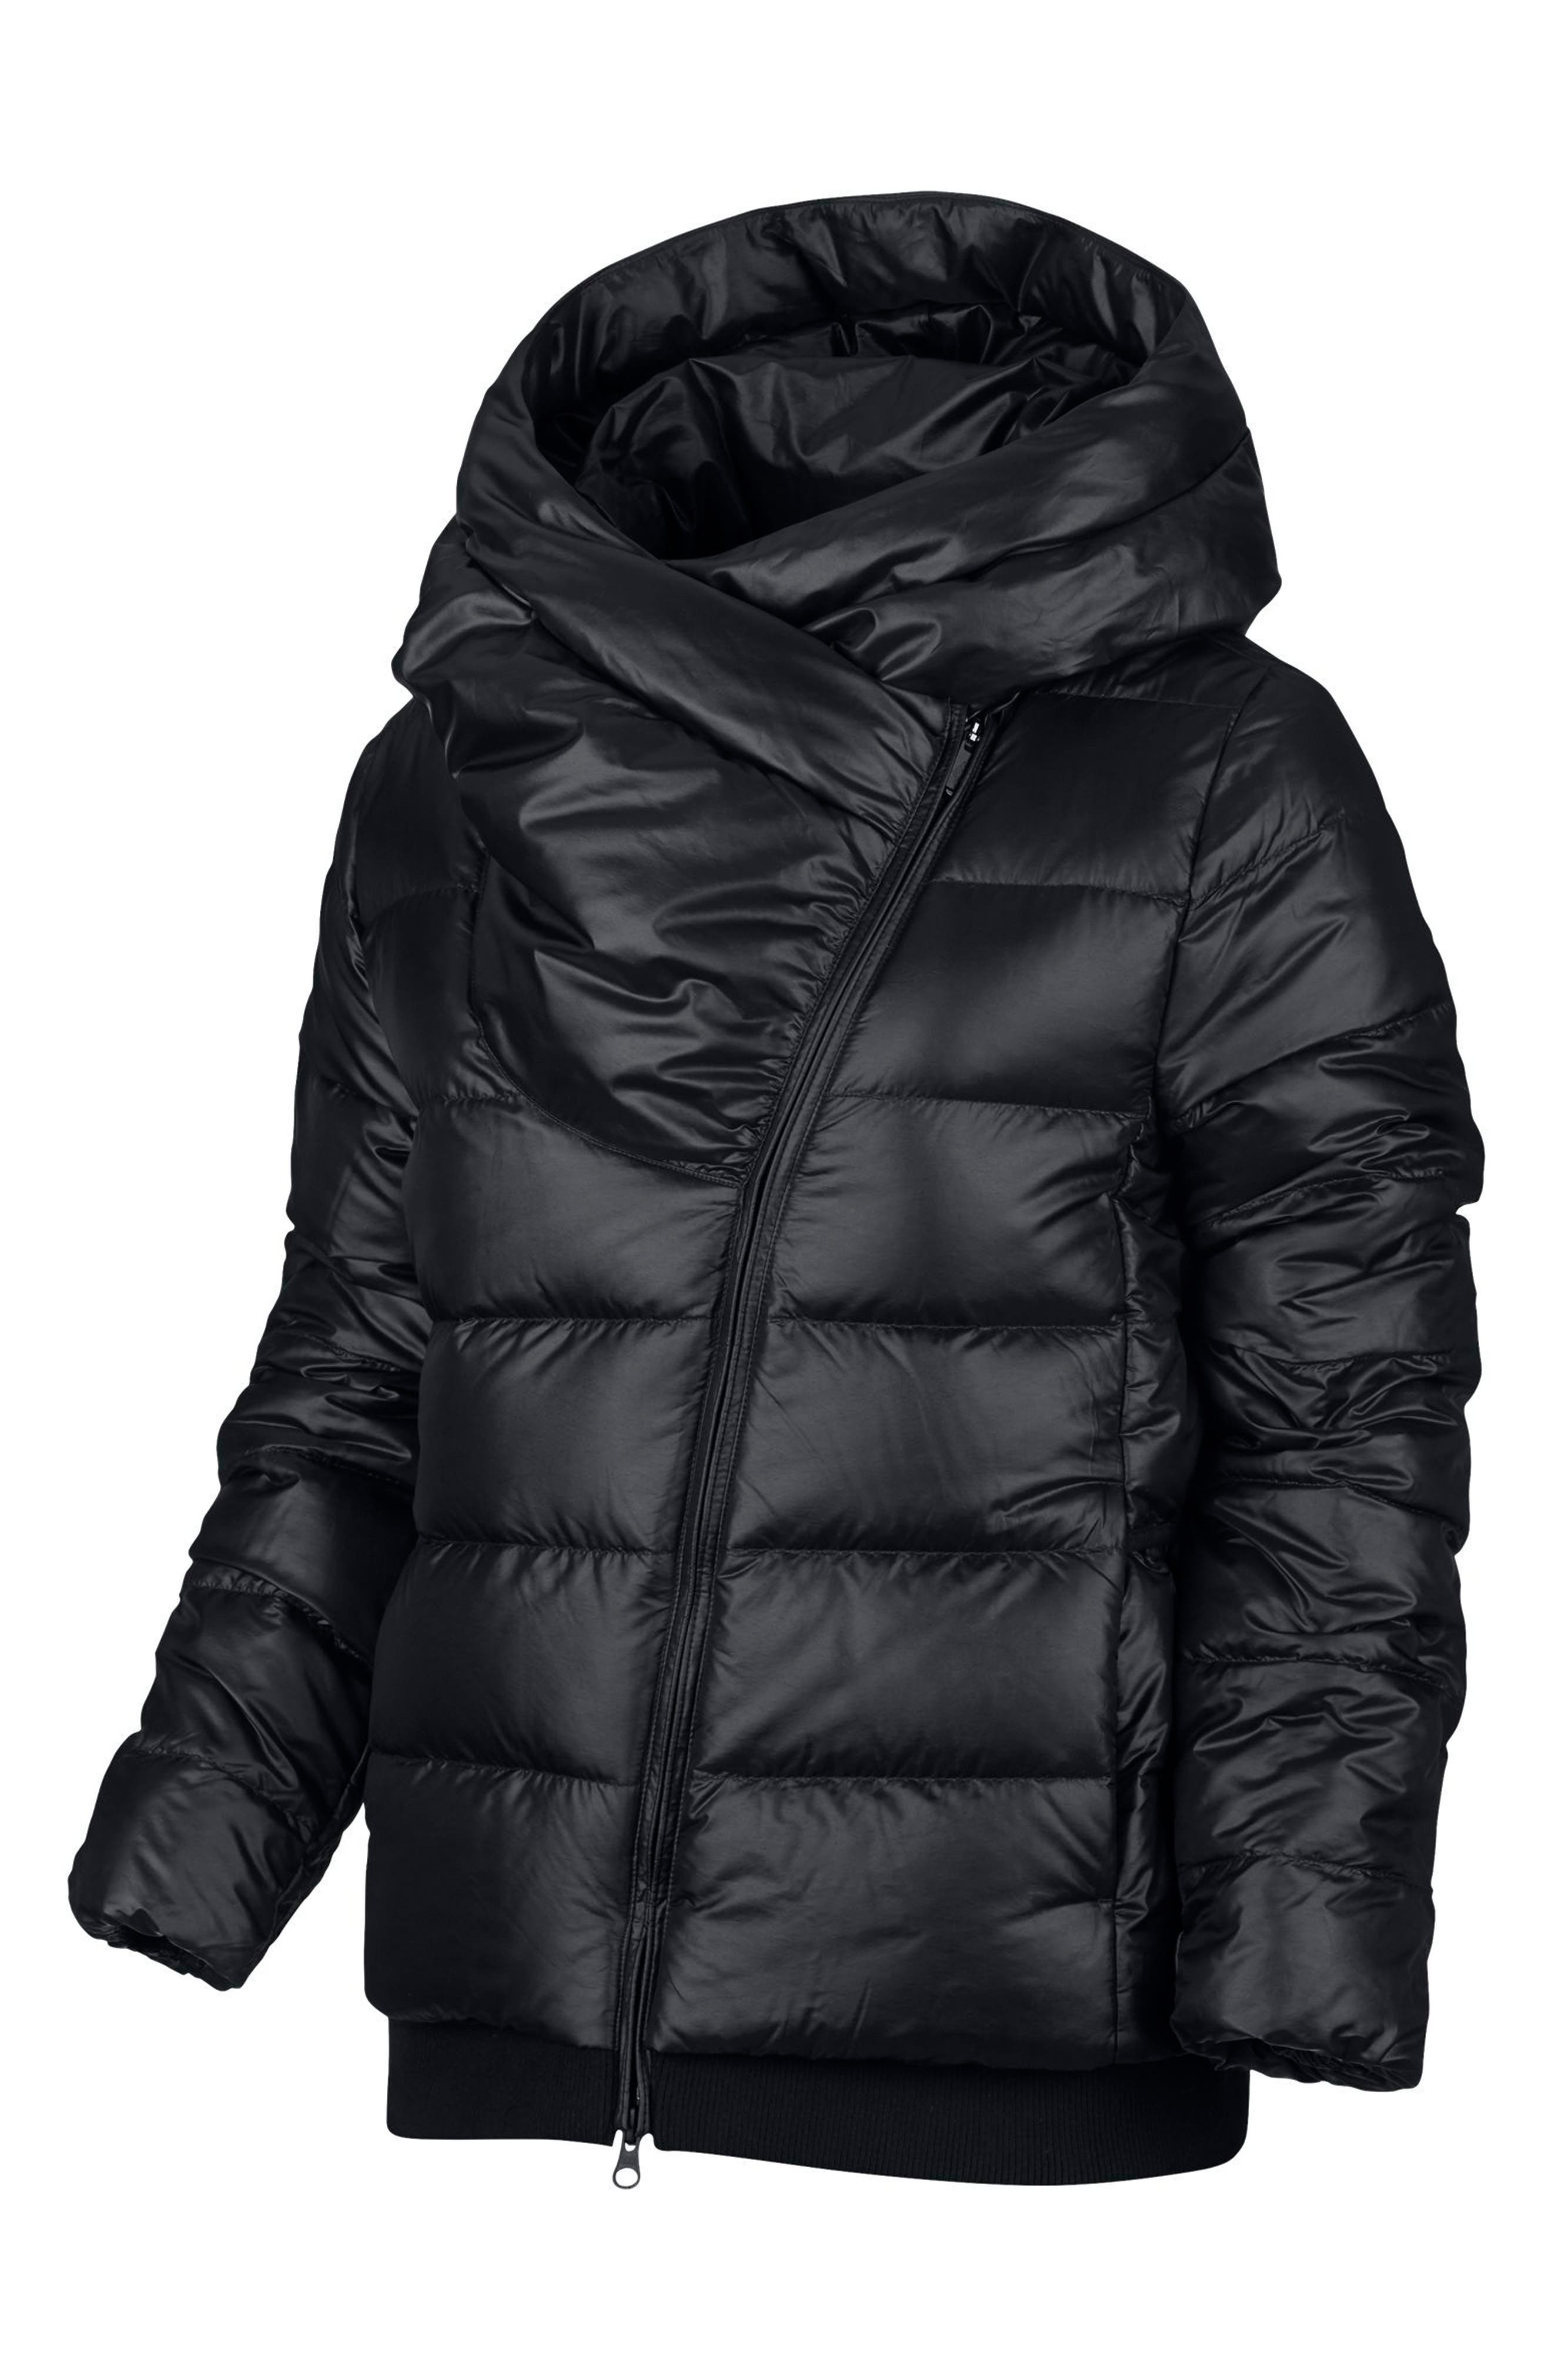 Sportswear Women's Hooded Down Jacket,                             Alternate thumbnail 5, color,                             010